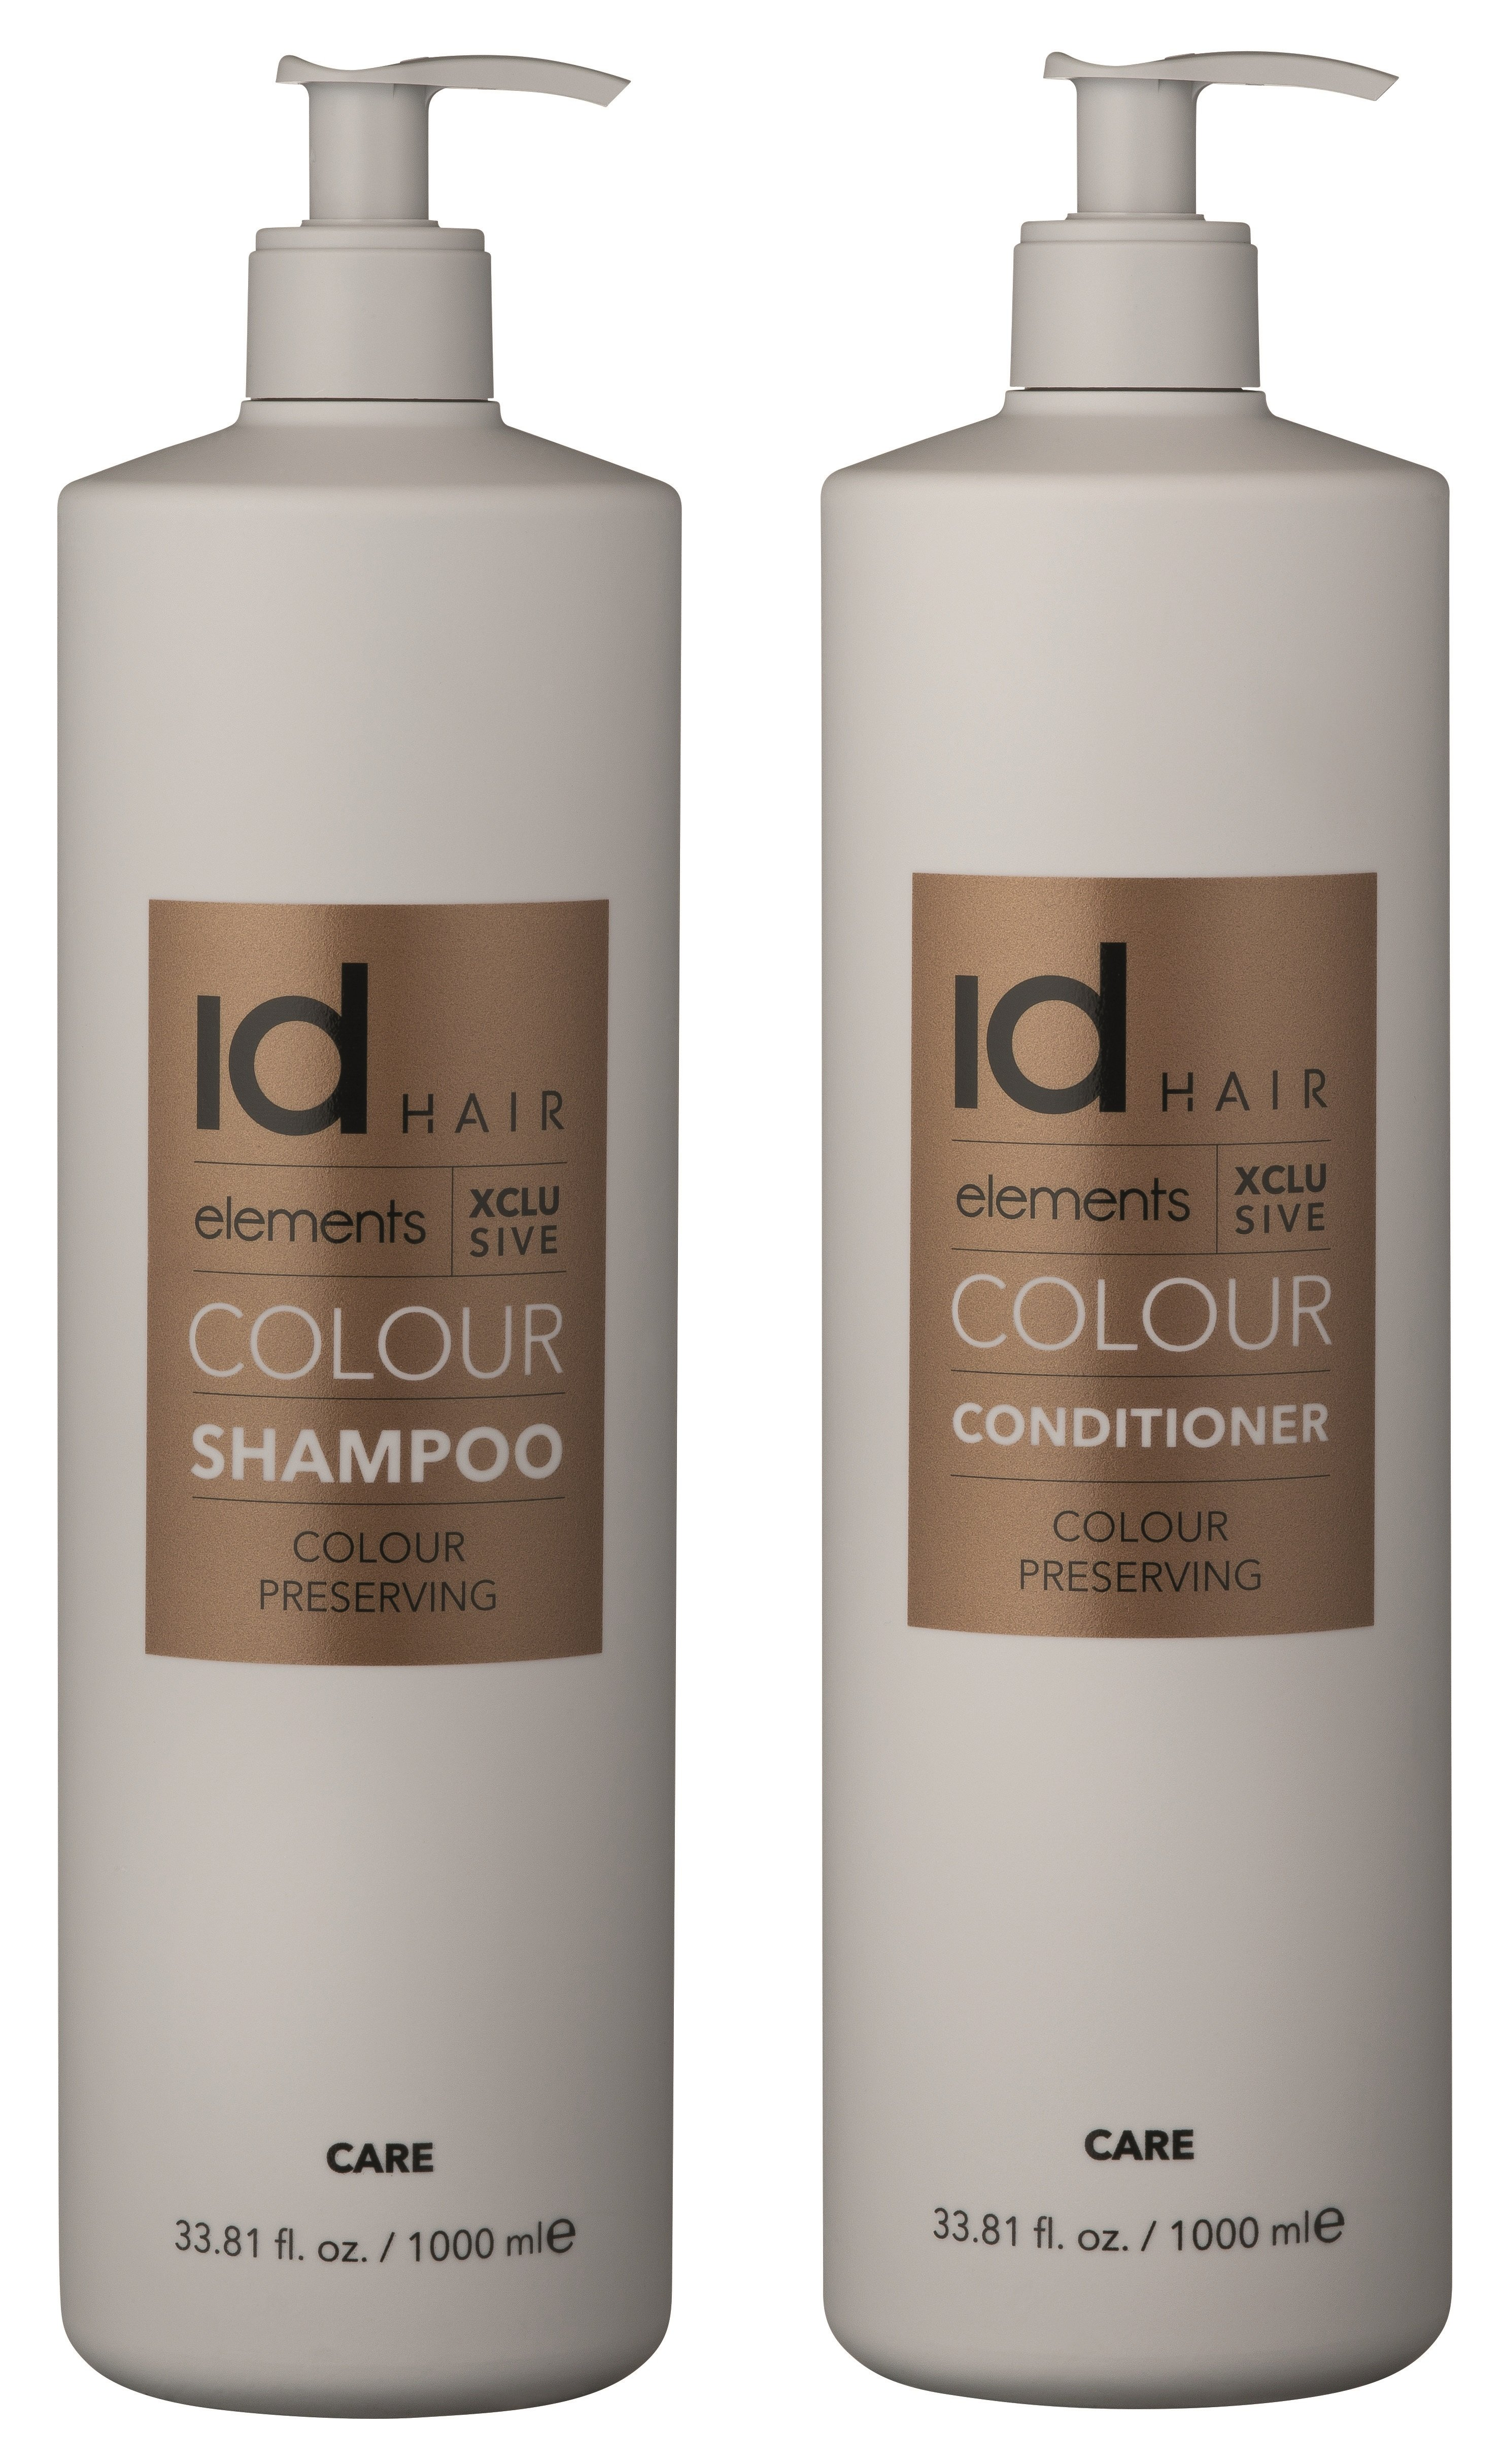 IdHAIR - Elements Xclusive Colour Shampoo 1000 ml + Conditioner 1000 ml